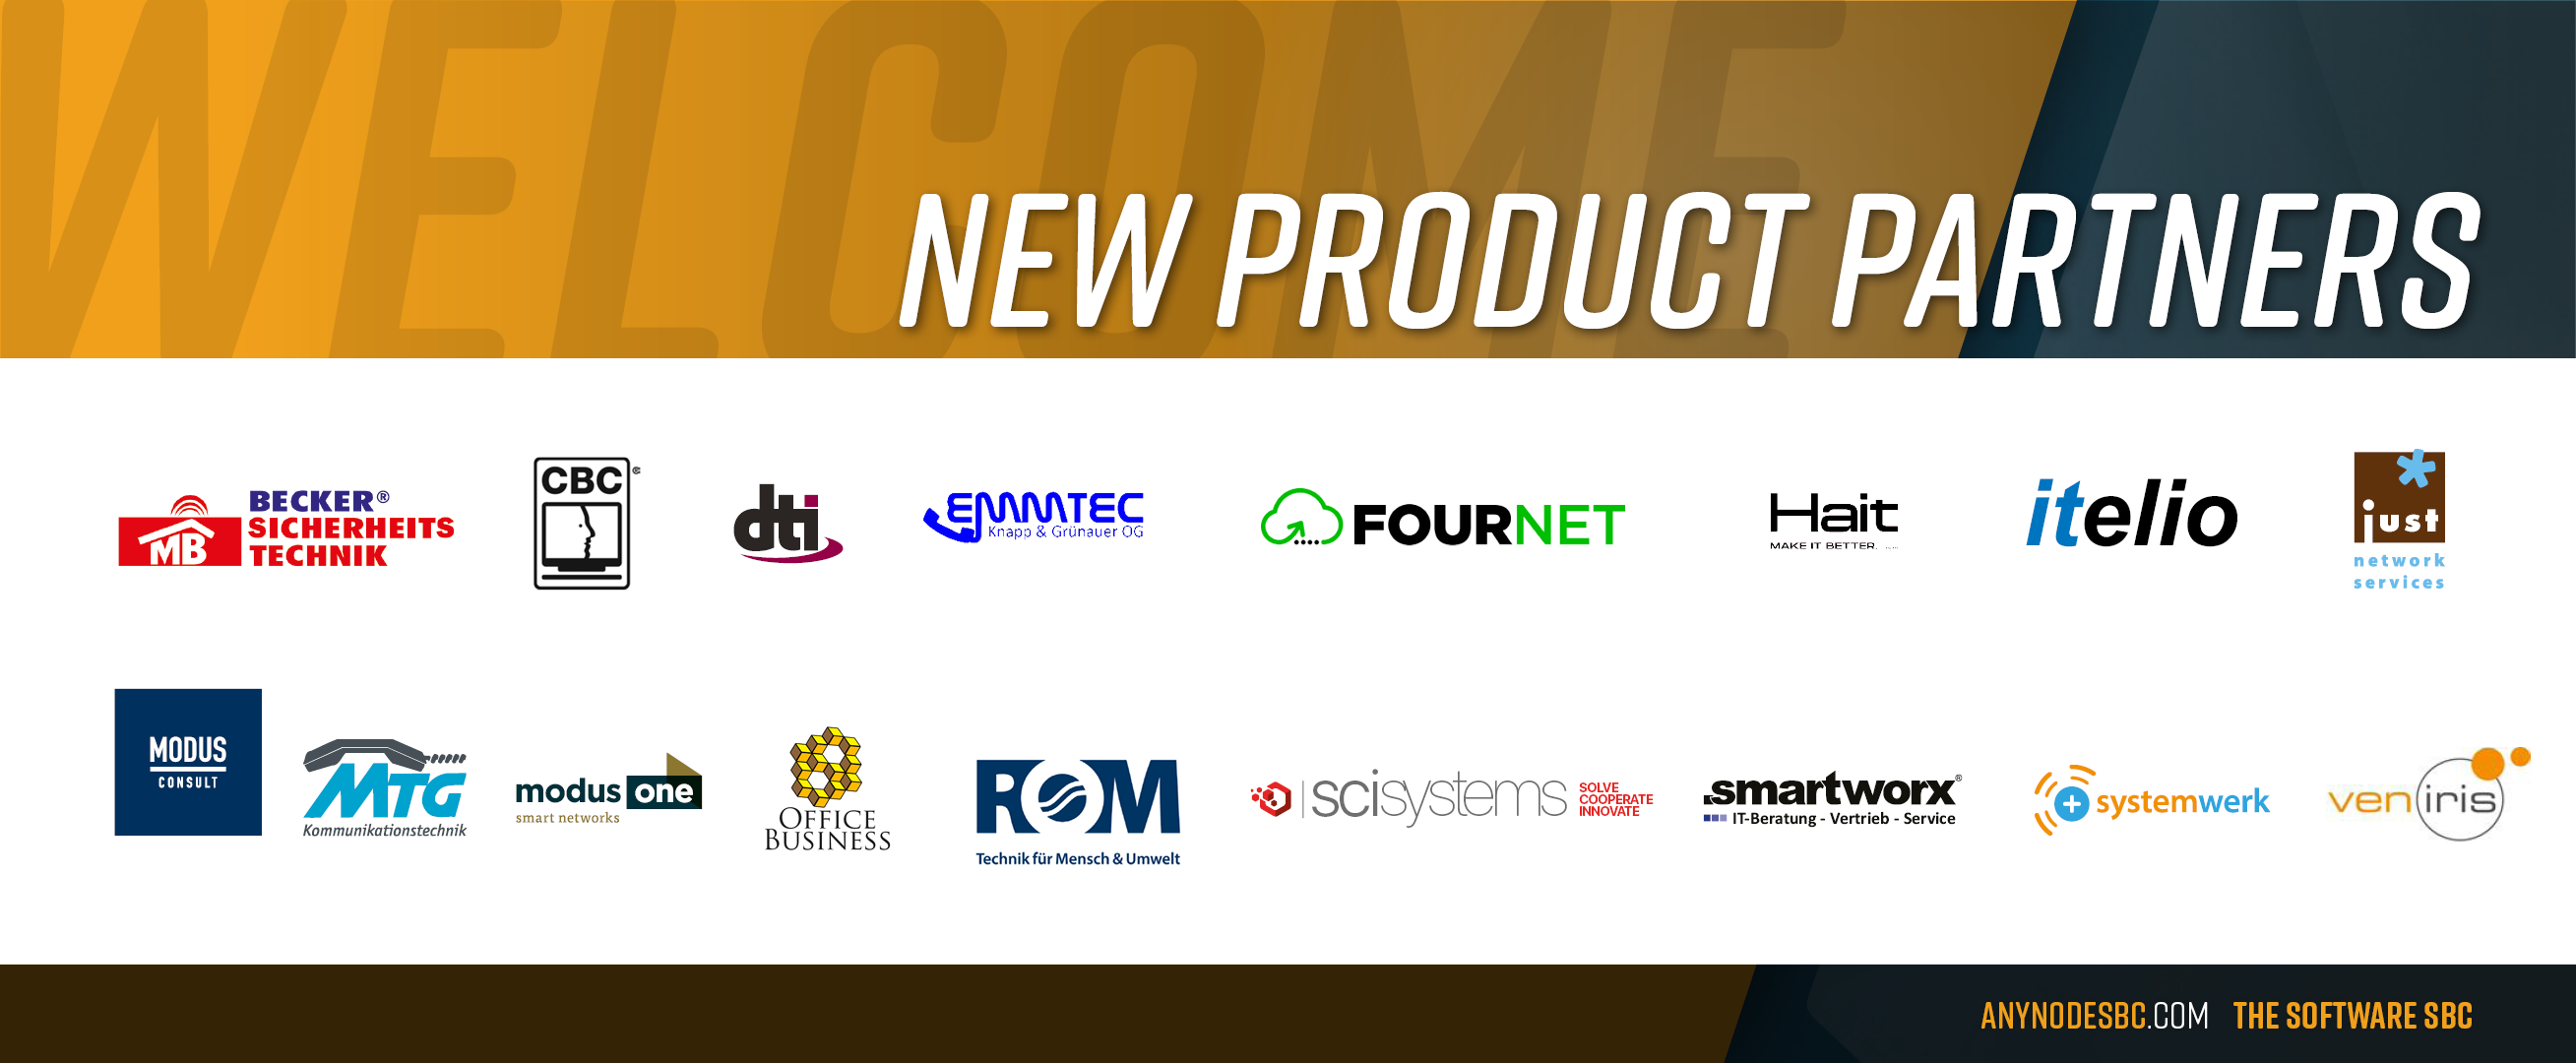 New anynode Product Partners in our Community!